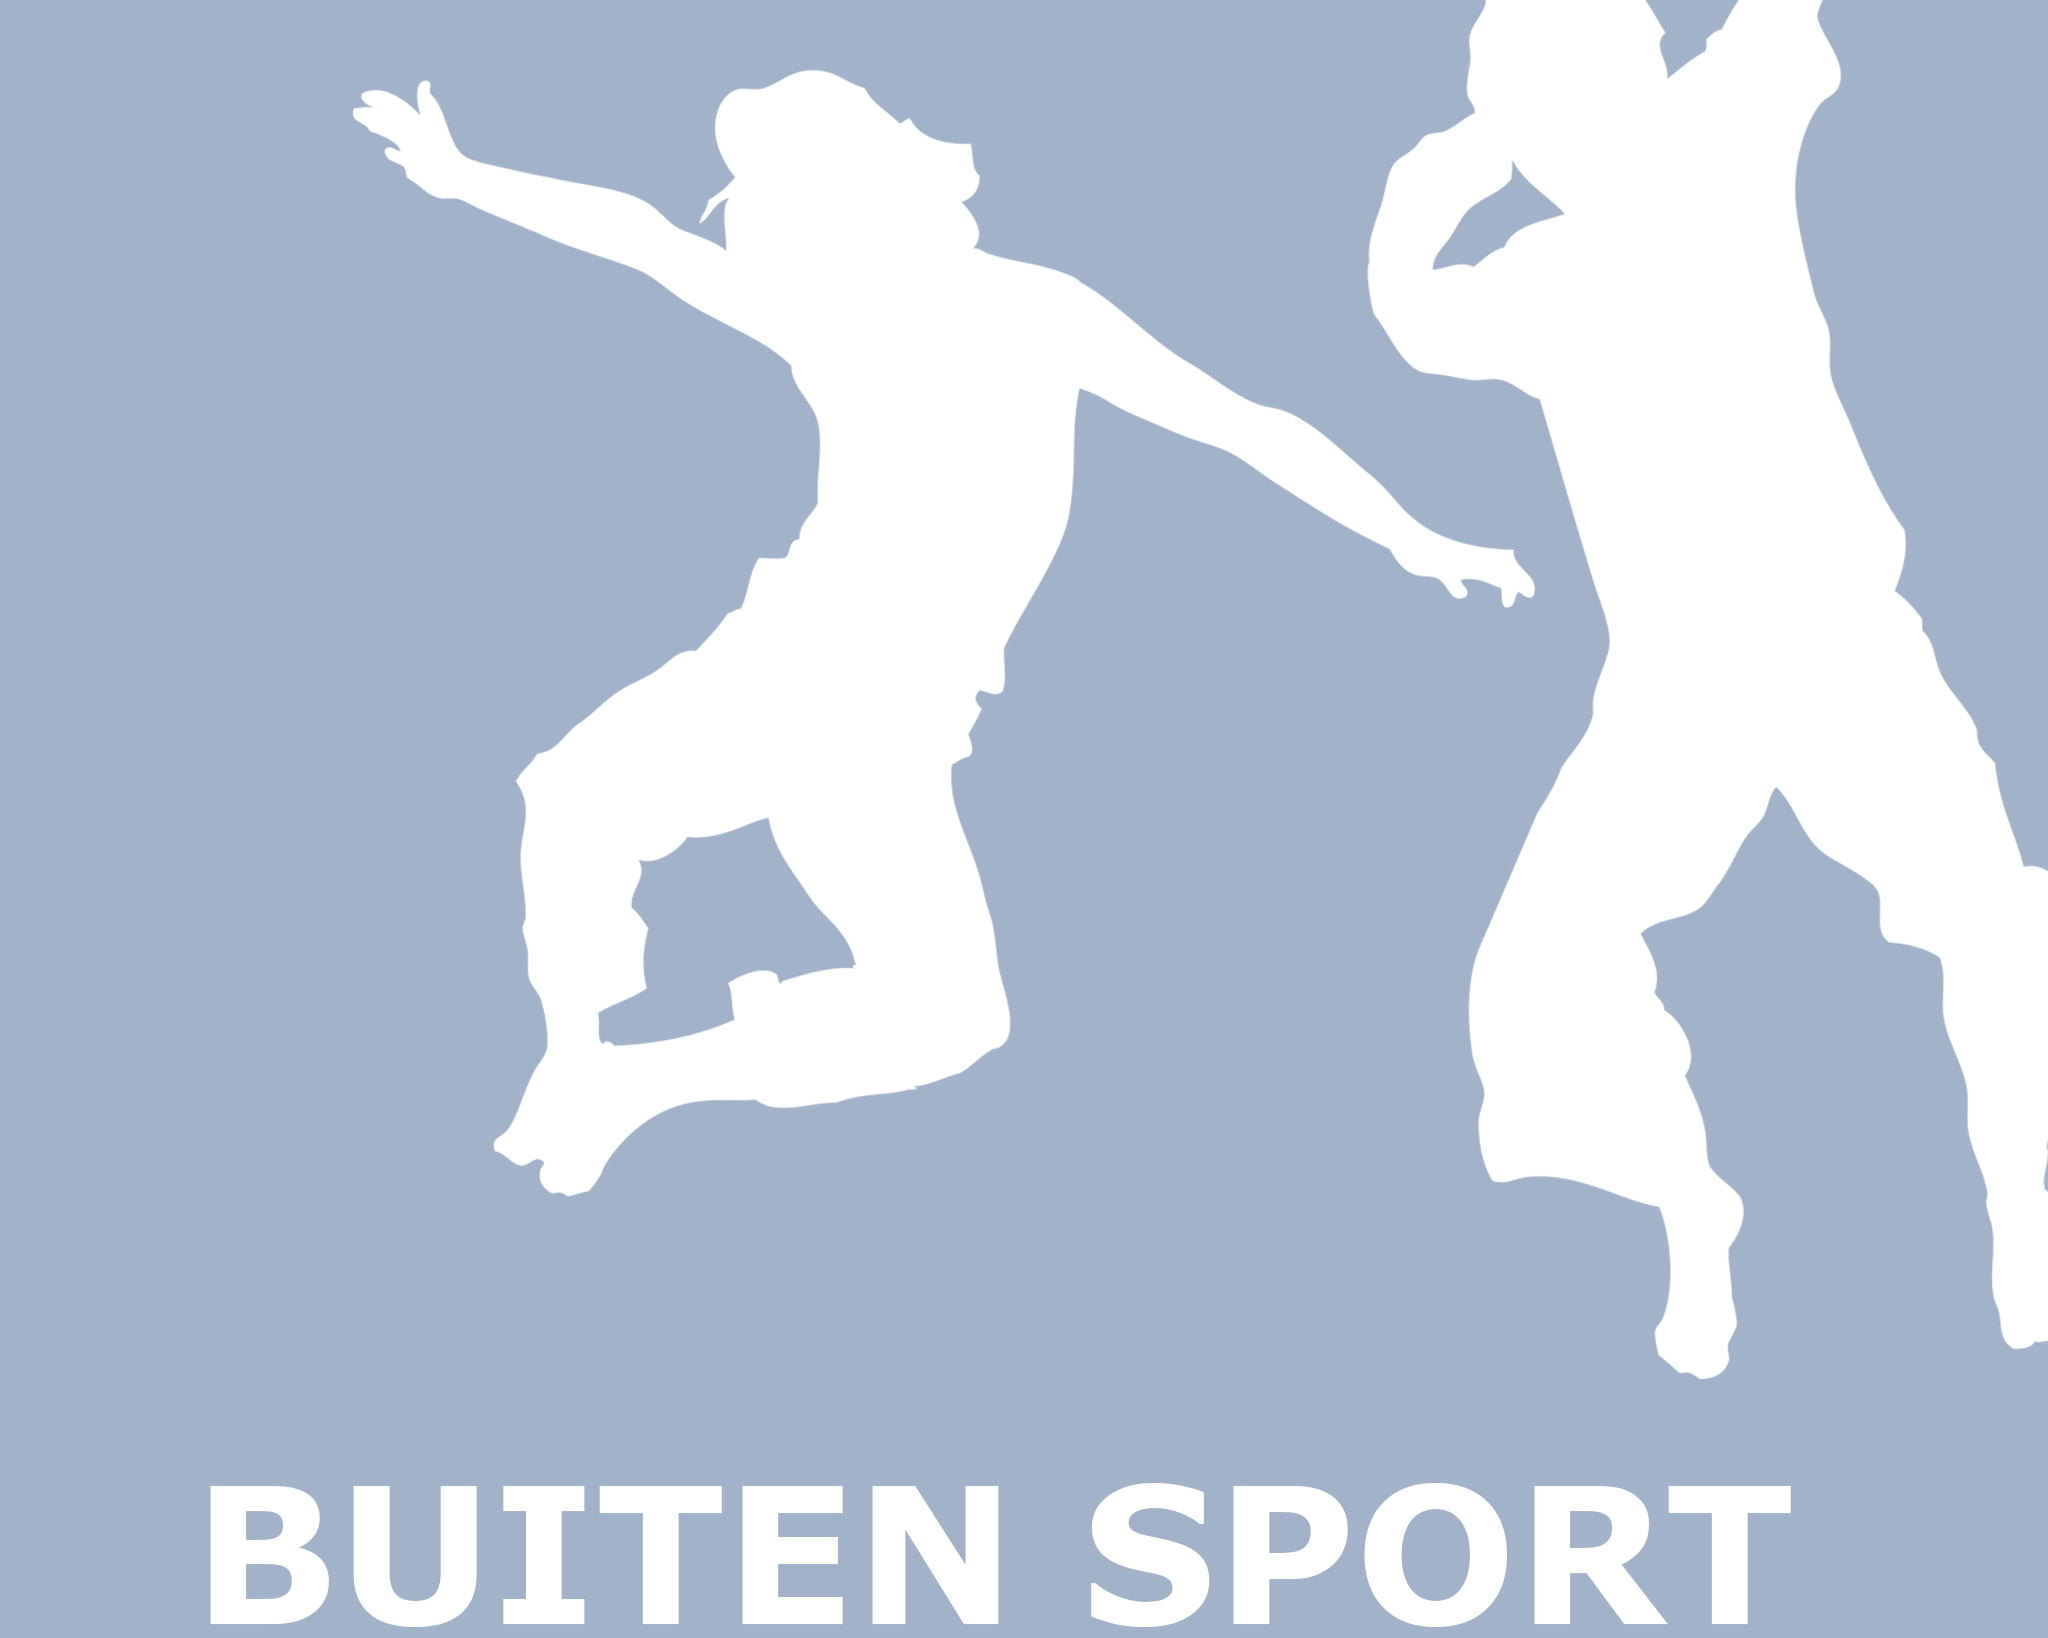 BUITEN SPORT